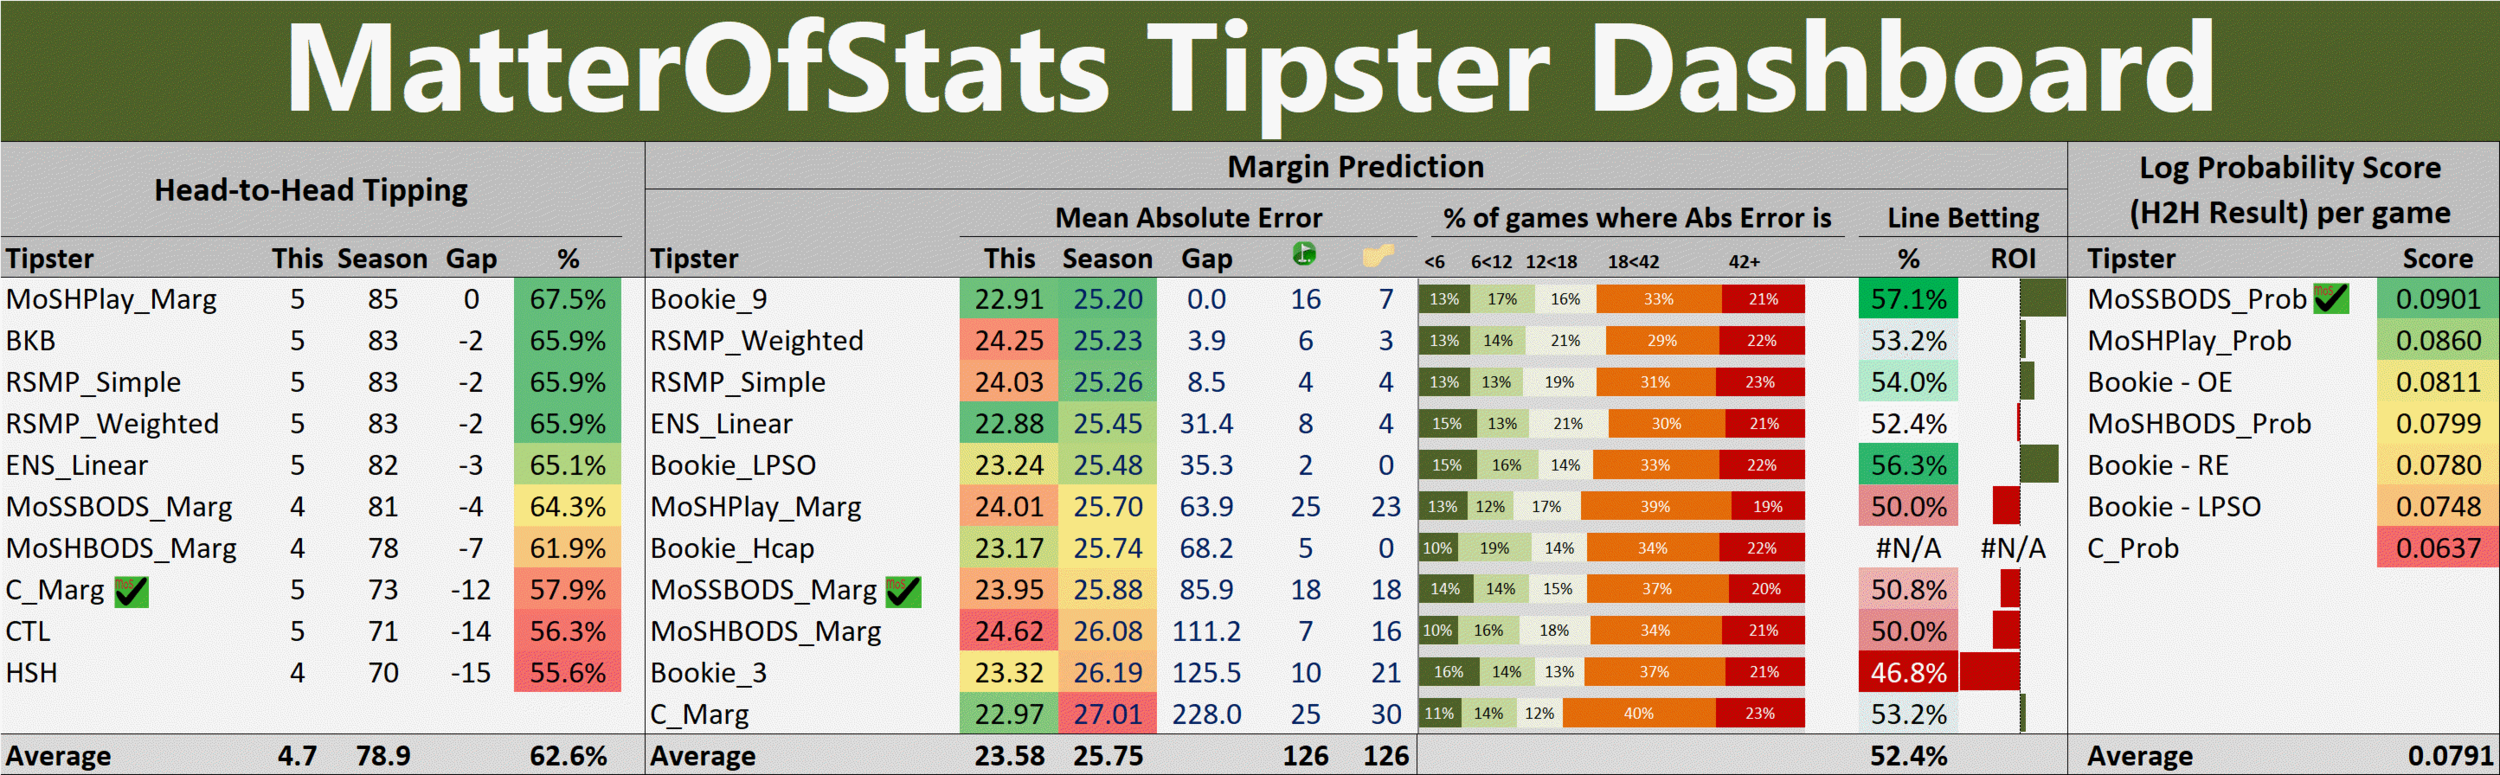 R15 - Tipster Dashboard.png